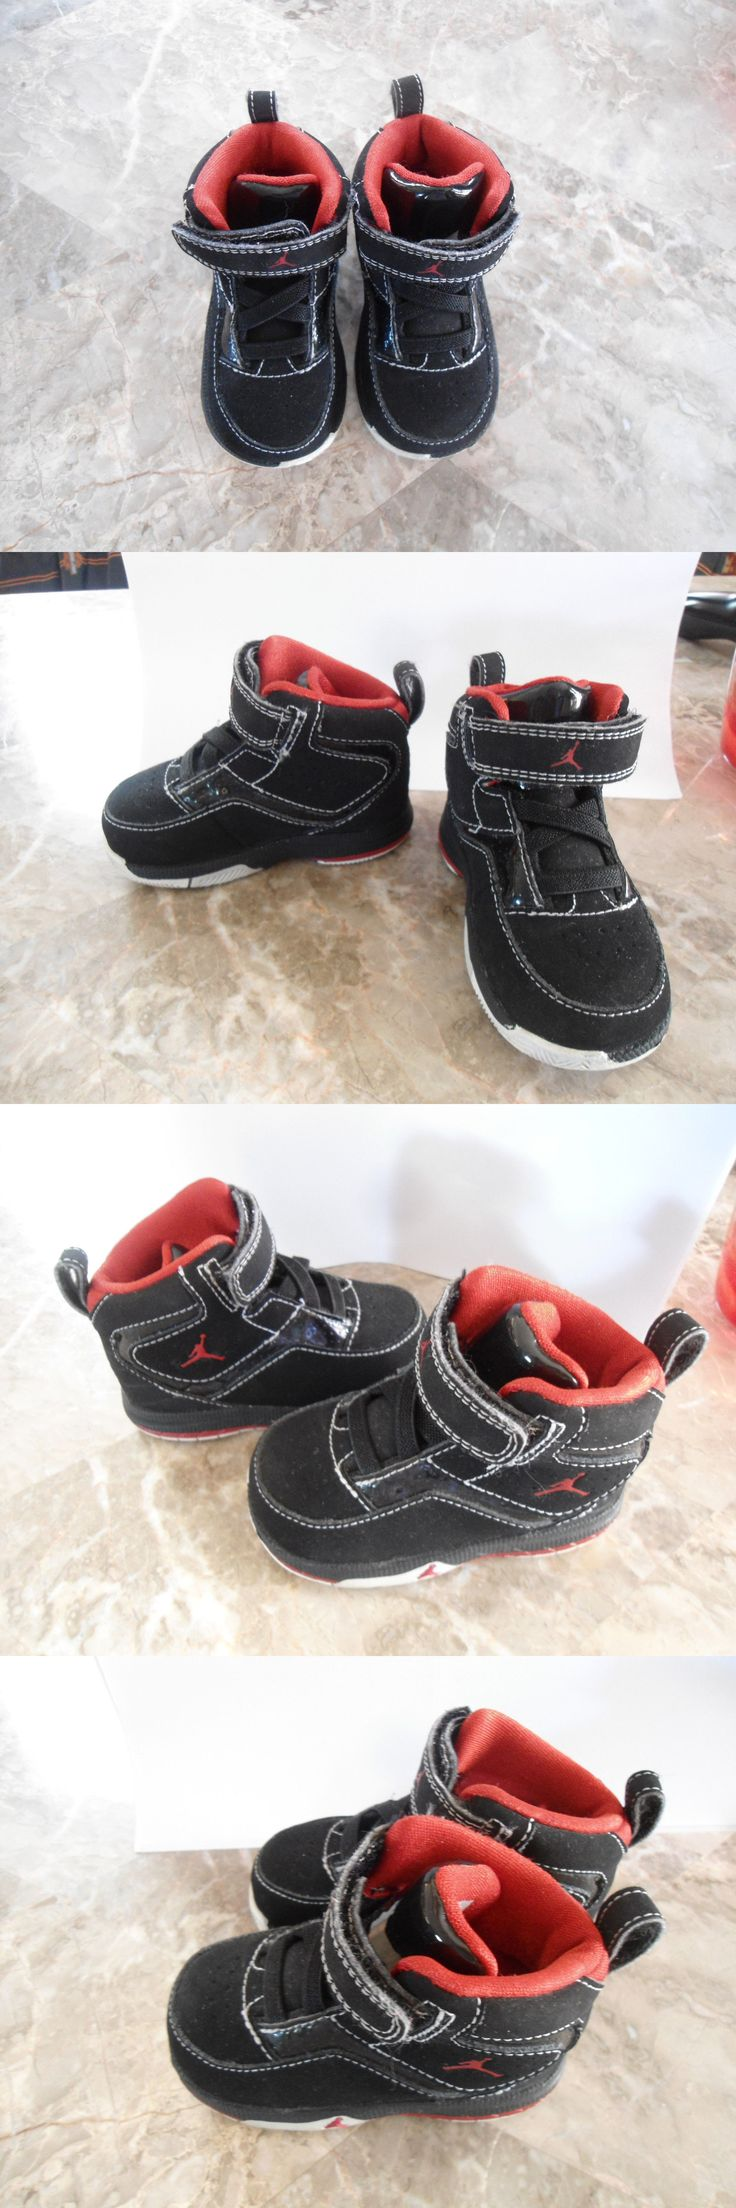 Michael Jordan Baby Clothing: Nike Michael Jordan Flight High Top Boys Athletic Toddler Tennis Shoes Sz 4 C -> BUY IT NOW ONLY: $19.99 on eBay!